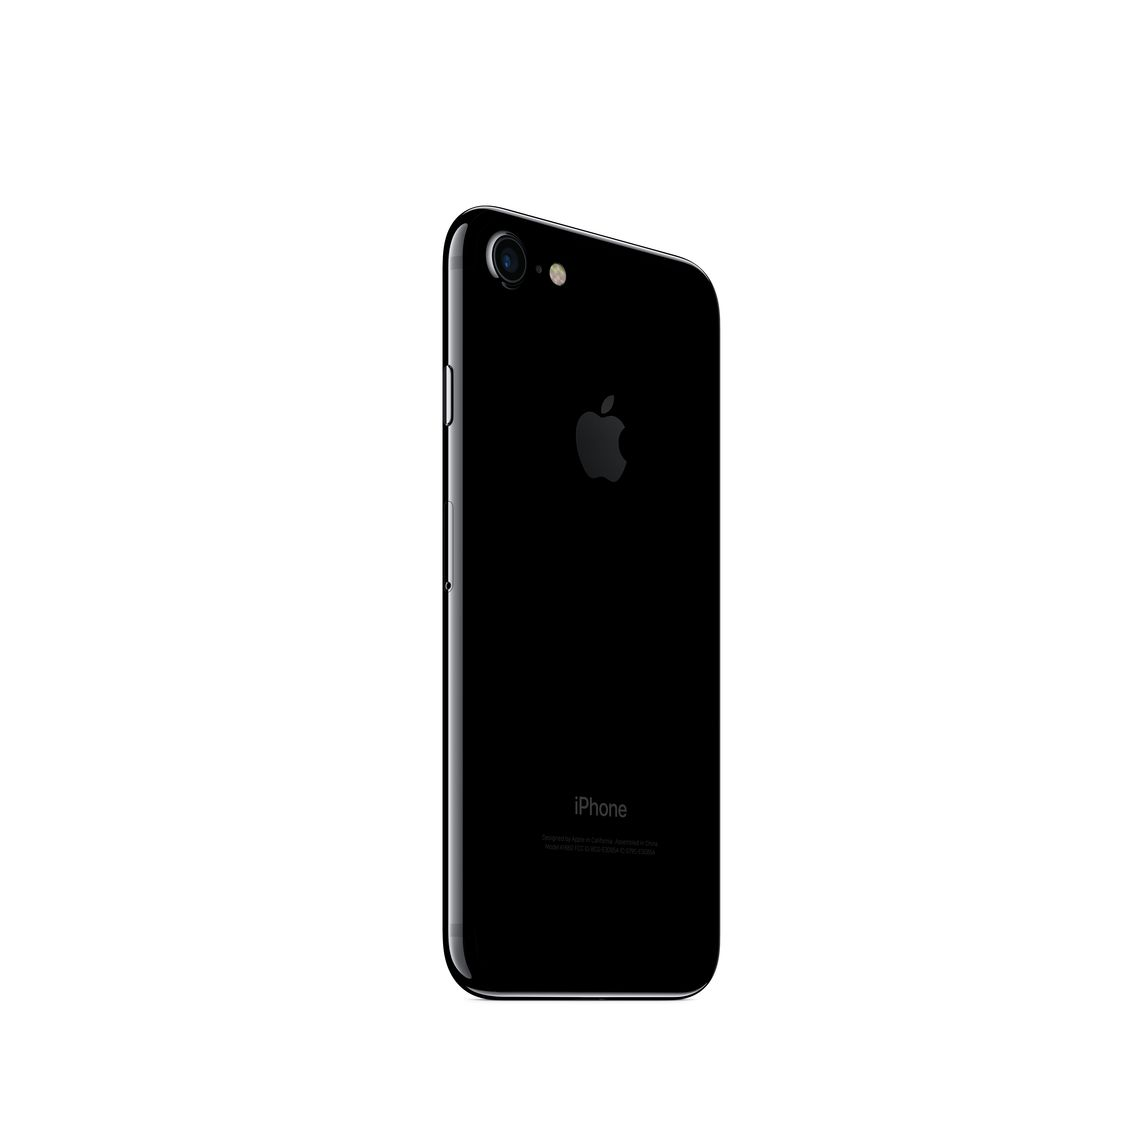 Iphone 7 Jet Black Price In Dubai - NYC